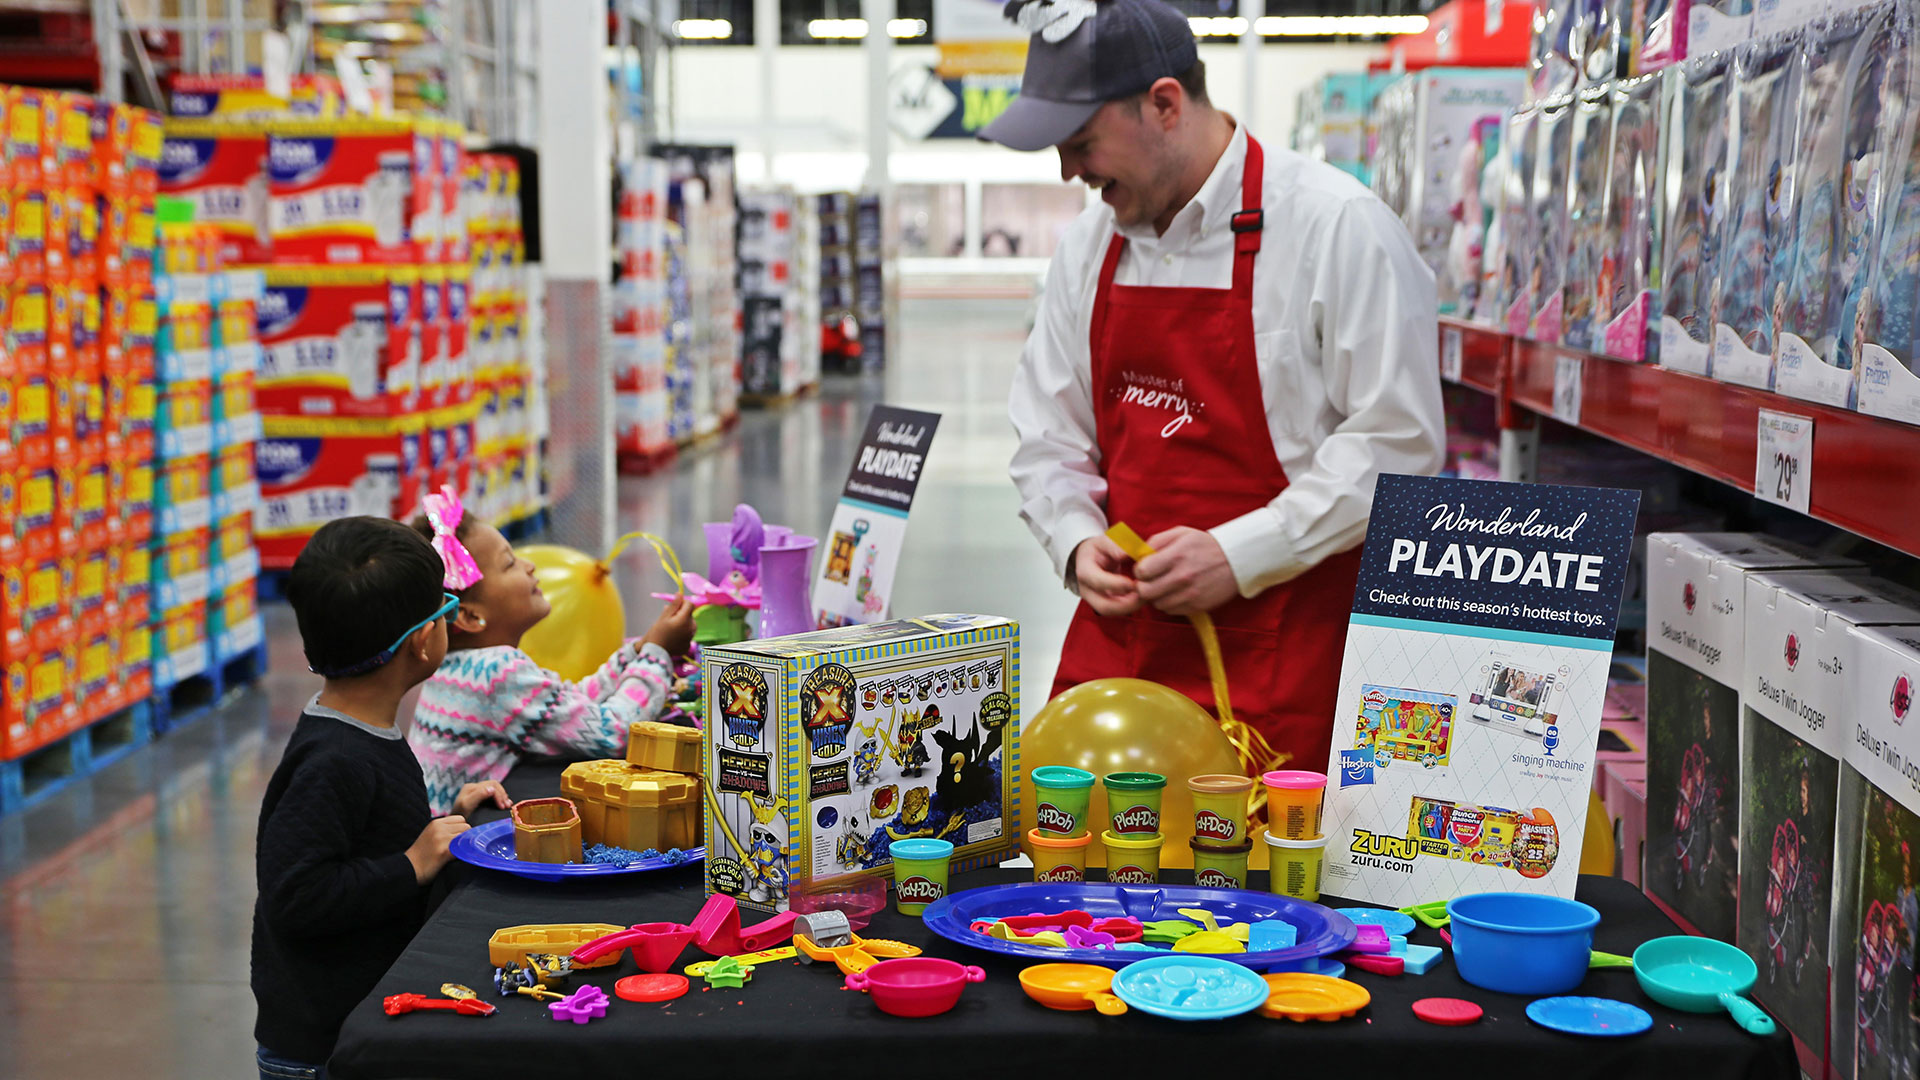 Sam's Club Wonderland Playdate